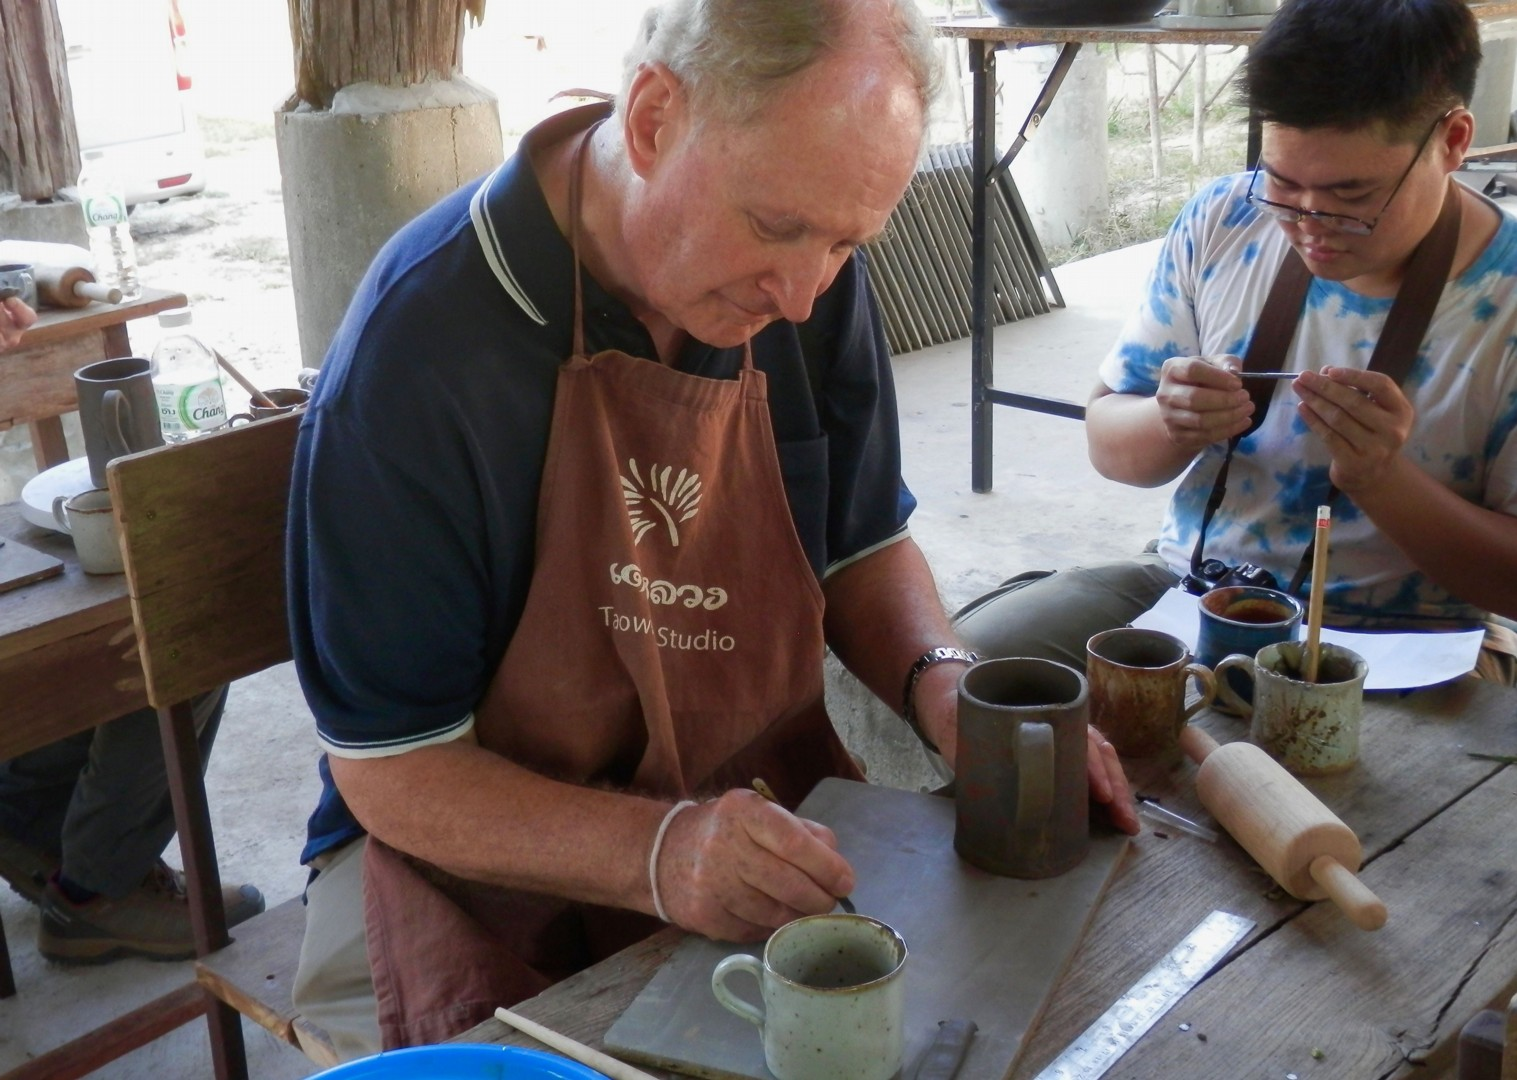 Thailand Painting Pottery.jpg - Thailand - Meet the People Tours